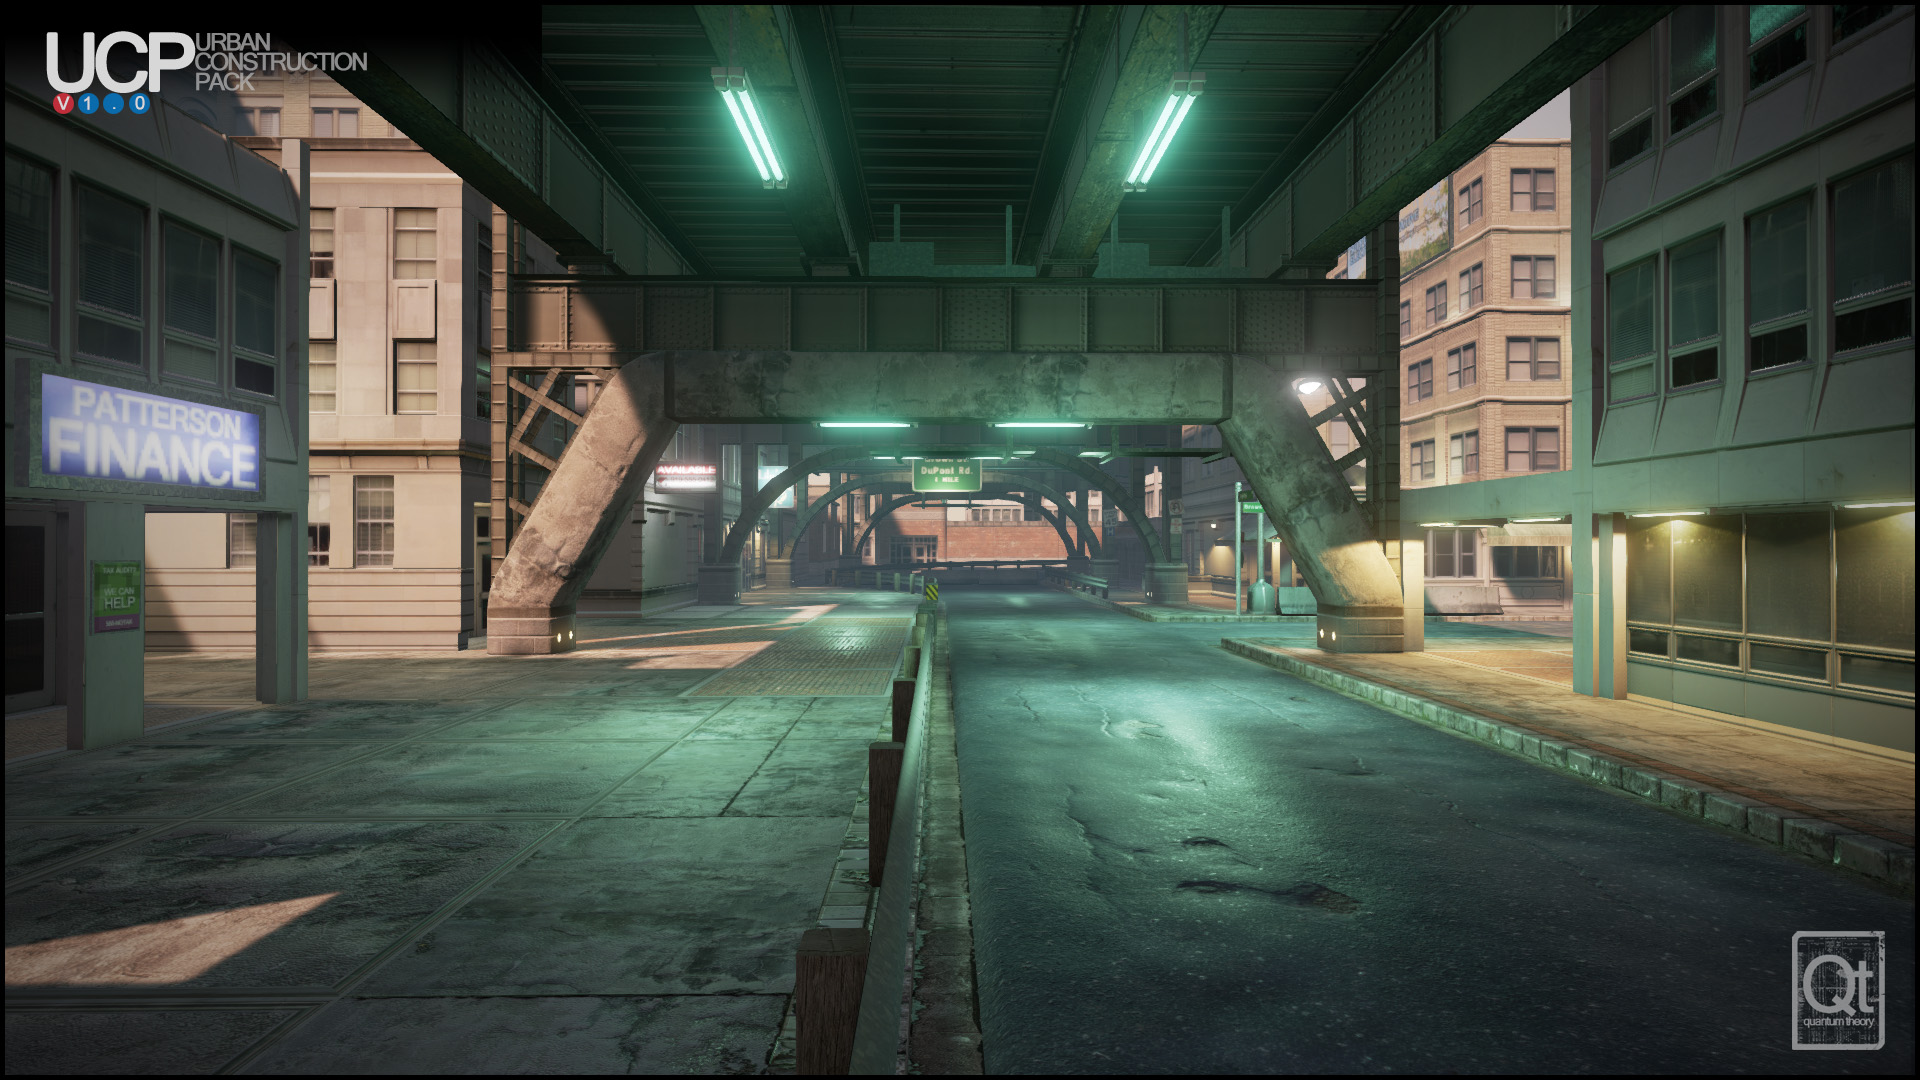 Urban Construction Pack by Quantum Theory Entertainment